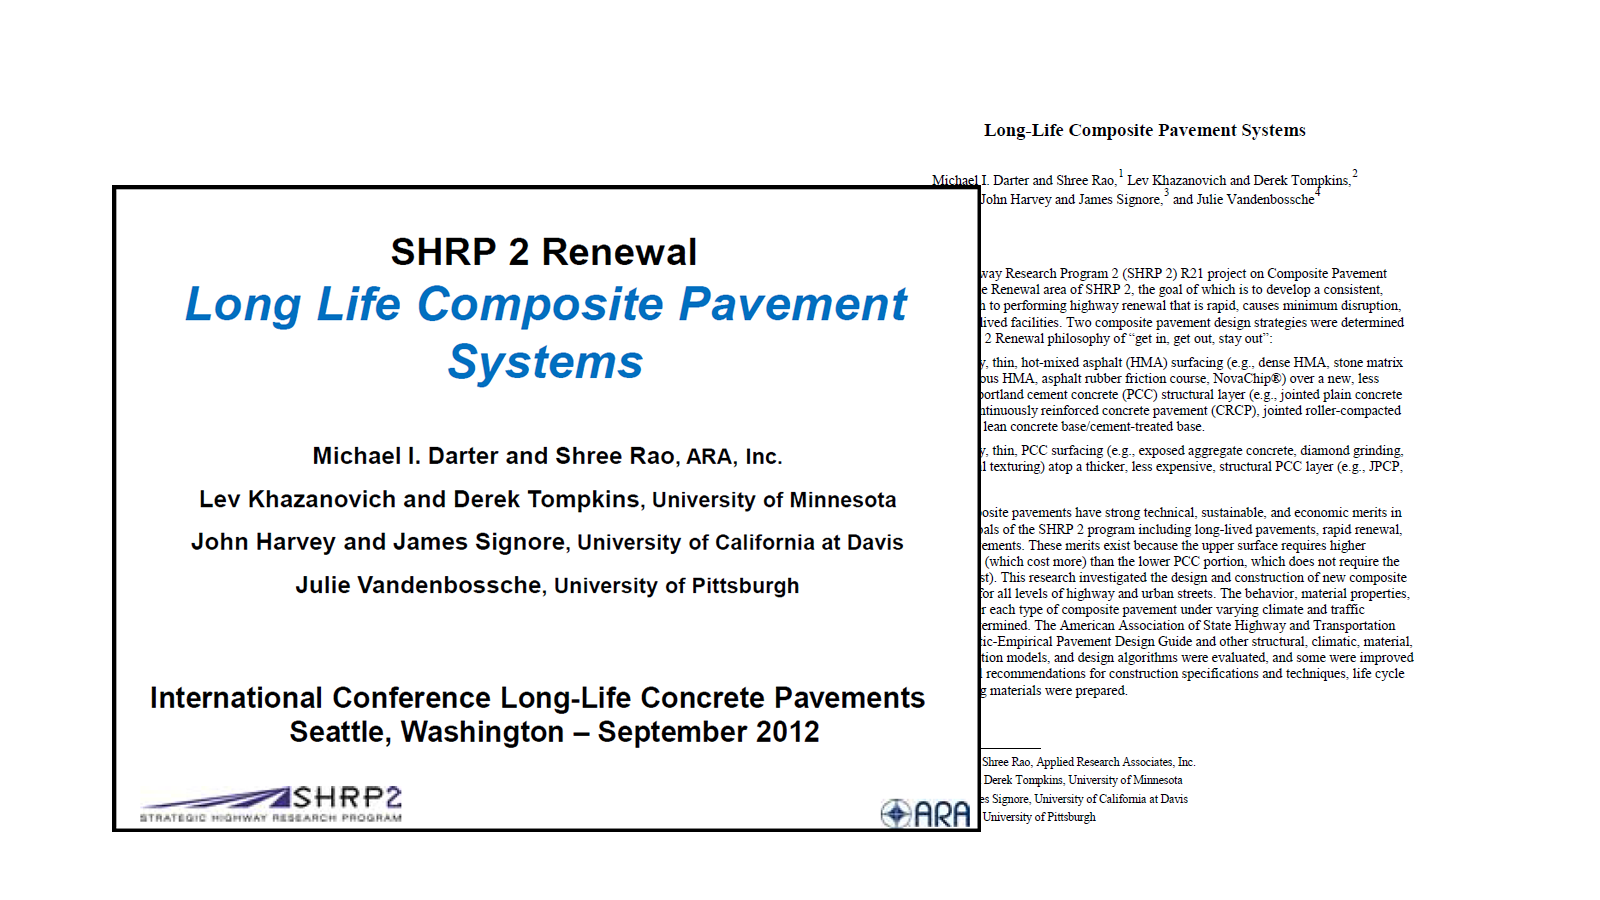 Long-Life Composite Pavement Systems